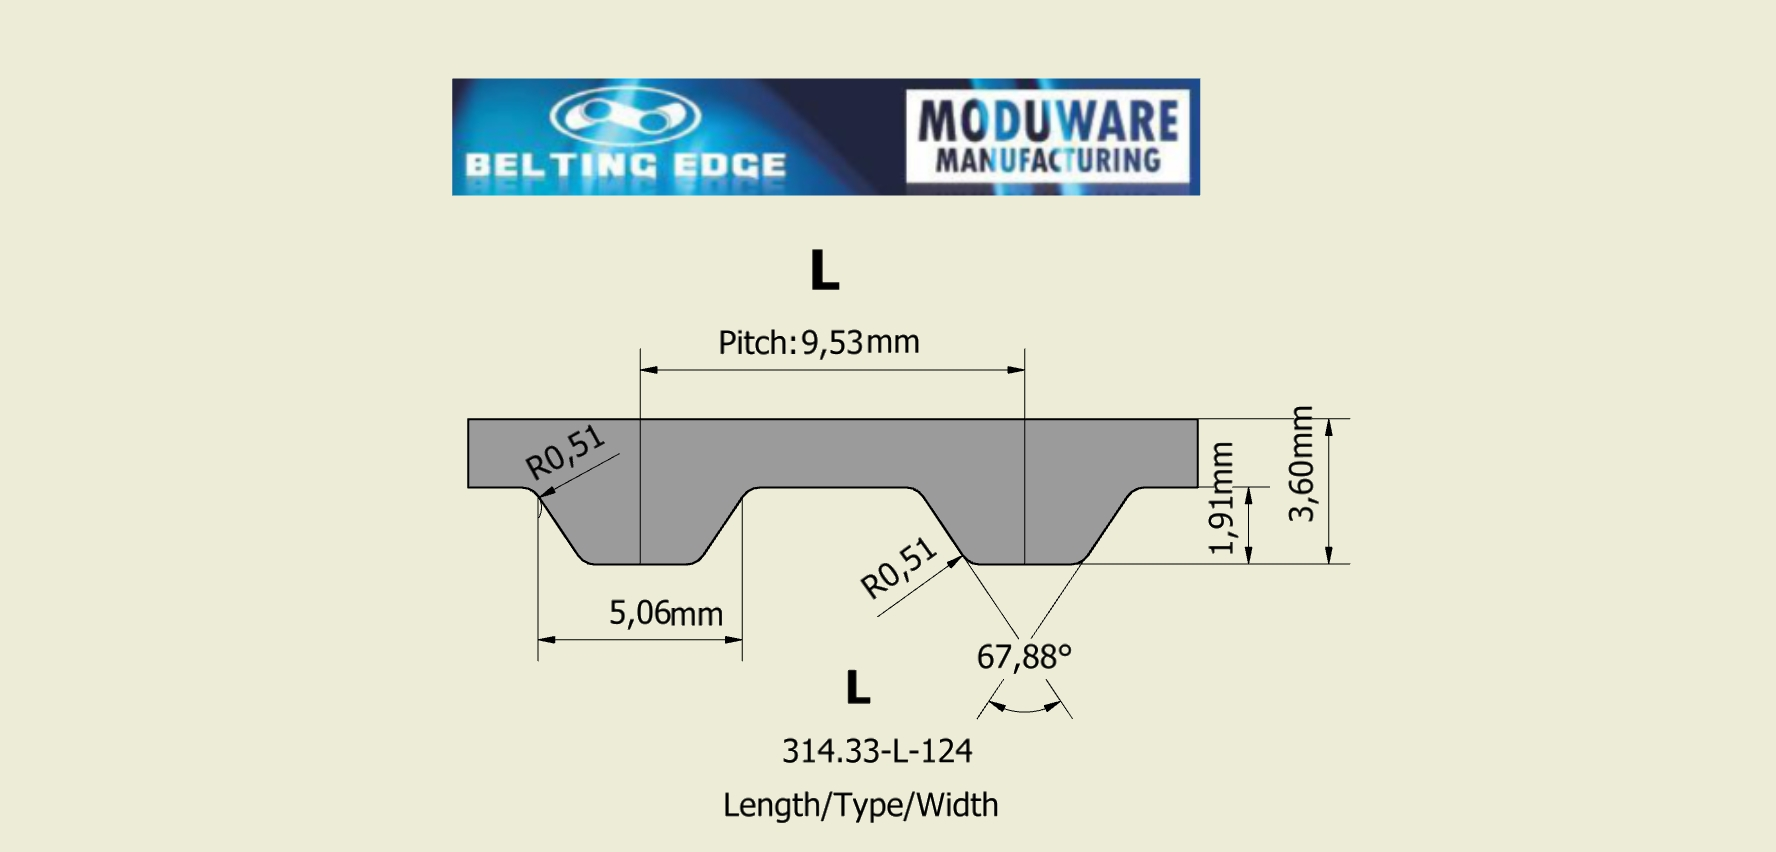 L-section, PAZ Tooth Timing belt, Kevlar Cords, PU Material, Technical Drawing